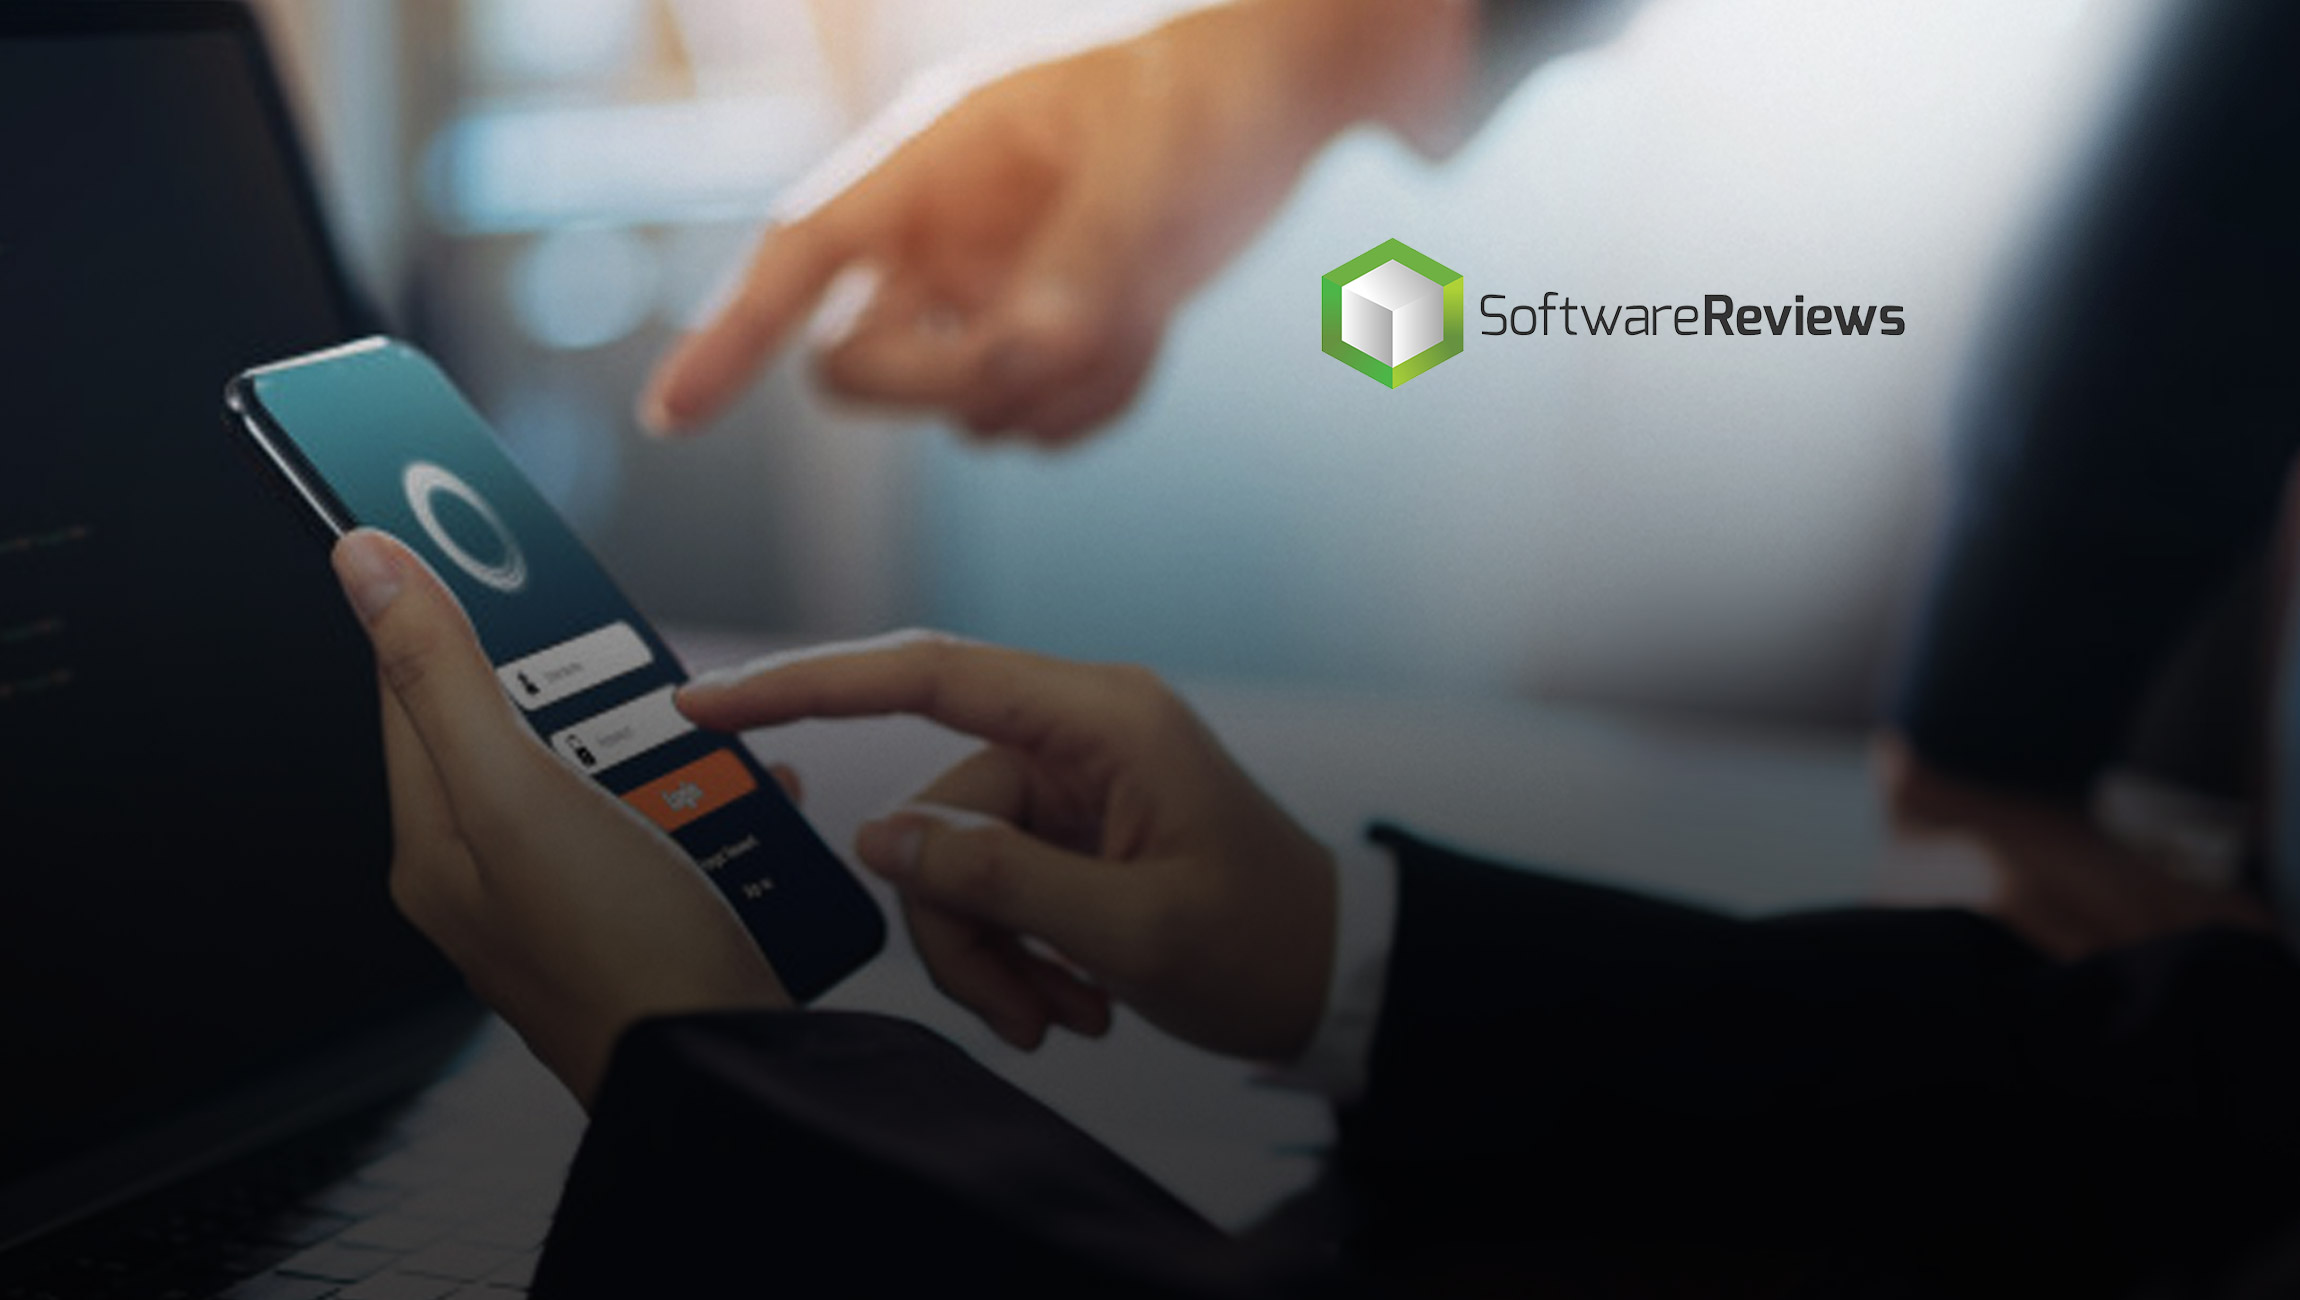 SoftwareReviews Reveals Top Three Human Capital Management Software Providers Building the Most Satisfying Client-Vendor Relationships